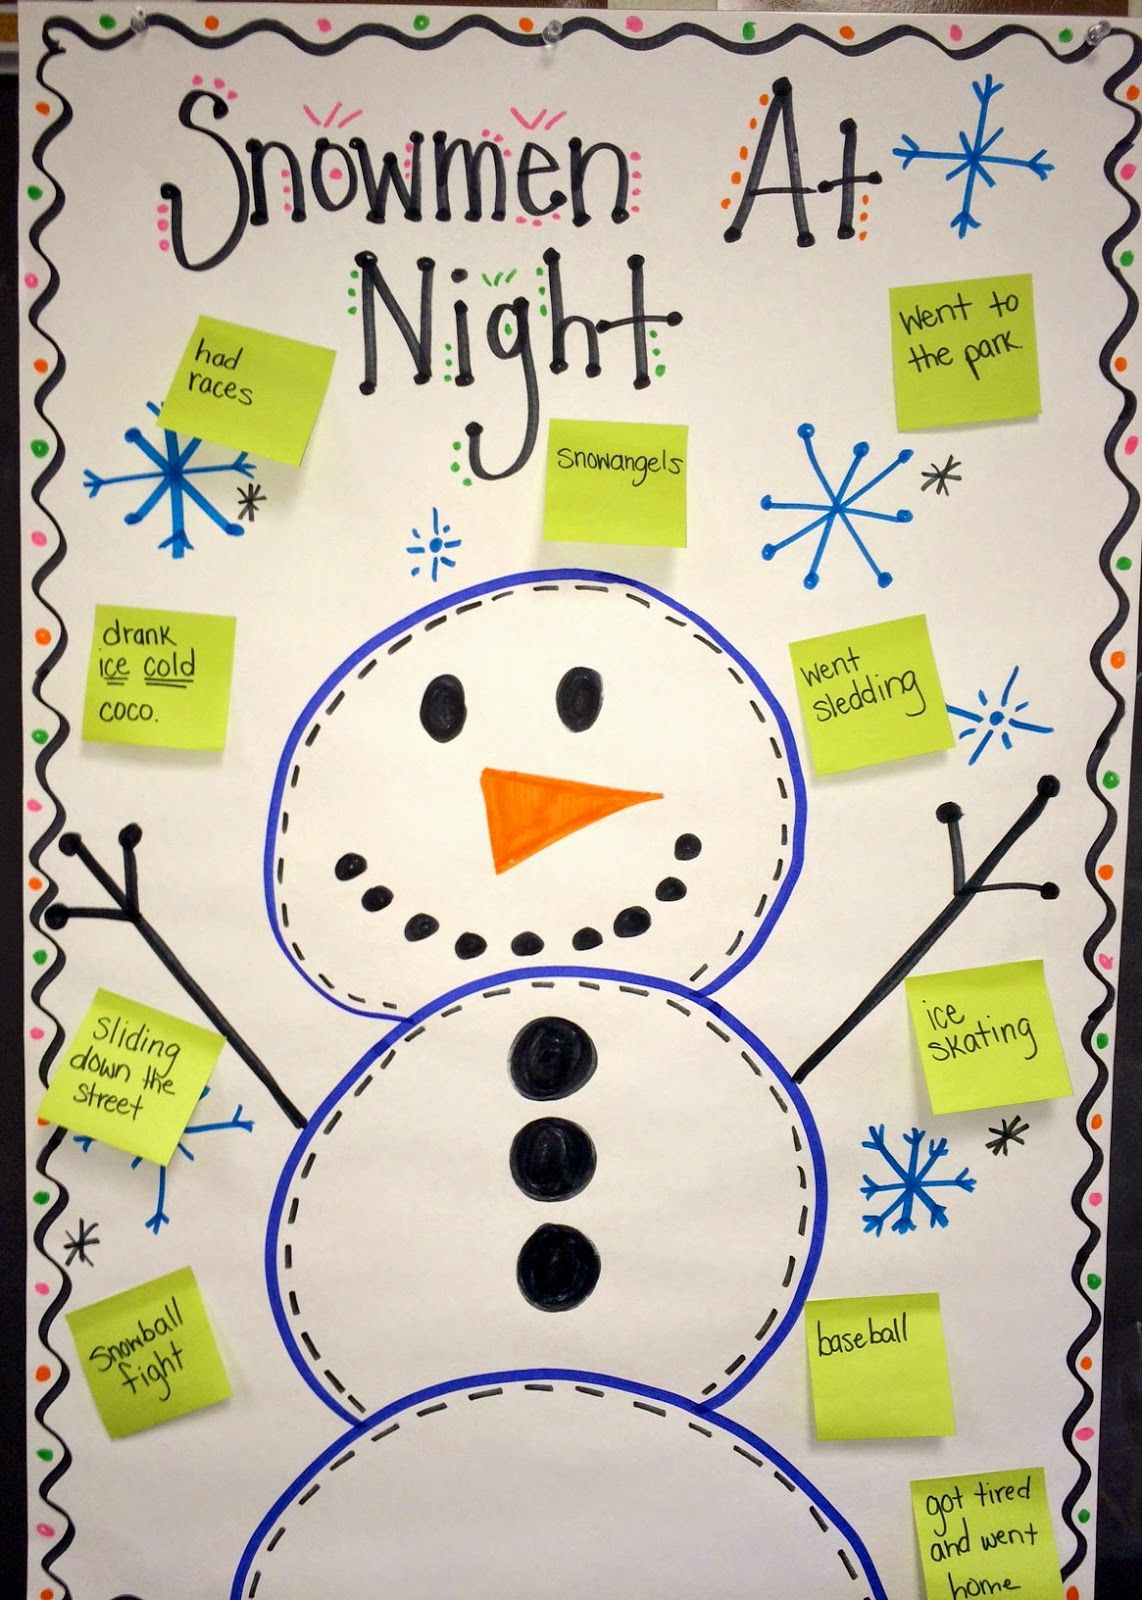 What Did Your Snowman Do At Night Make A Writing Page Sheet With The Words My Snowman Then